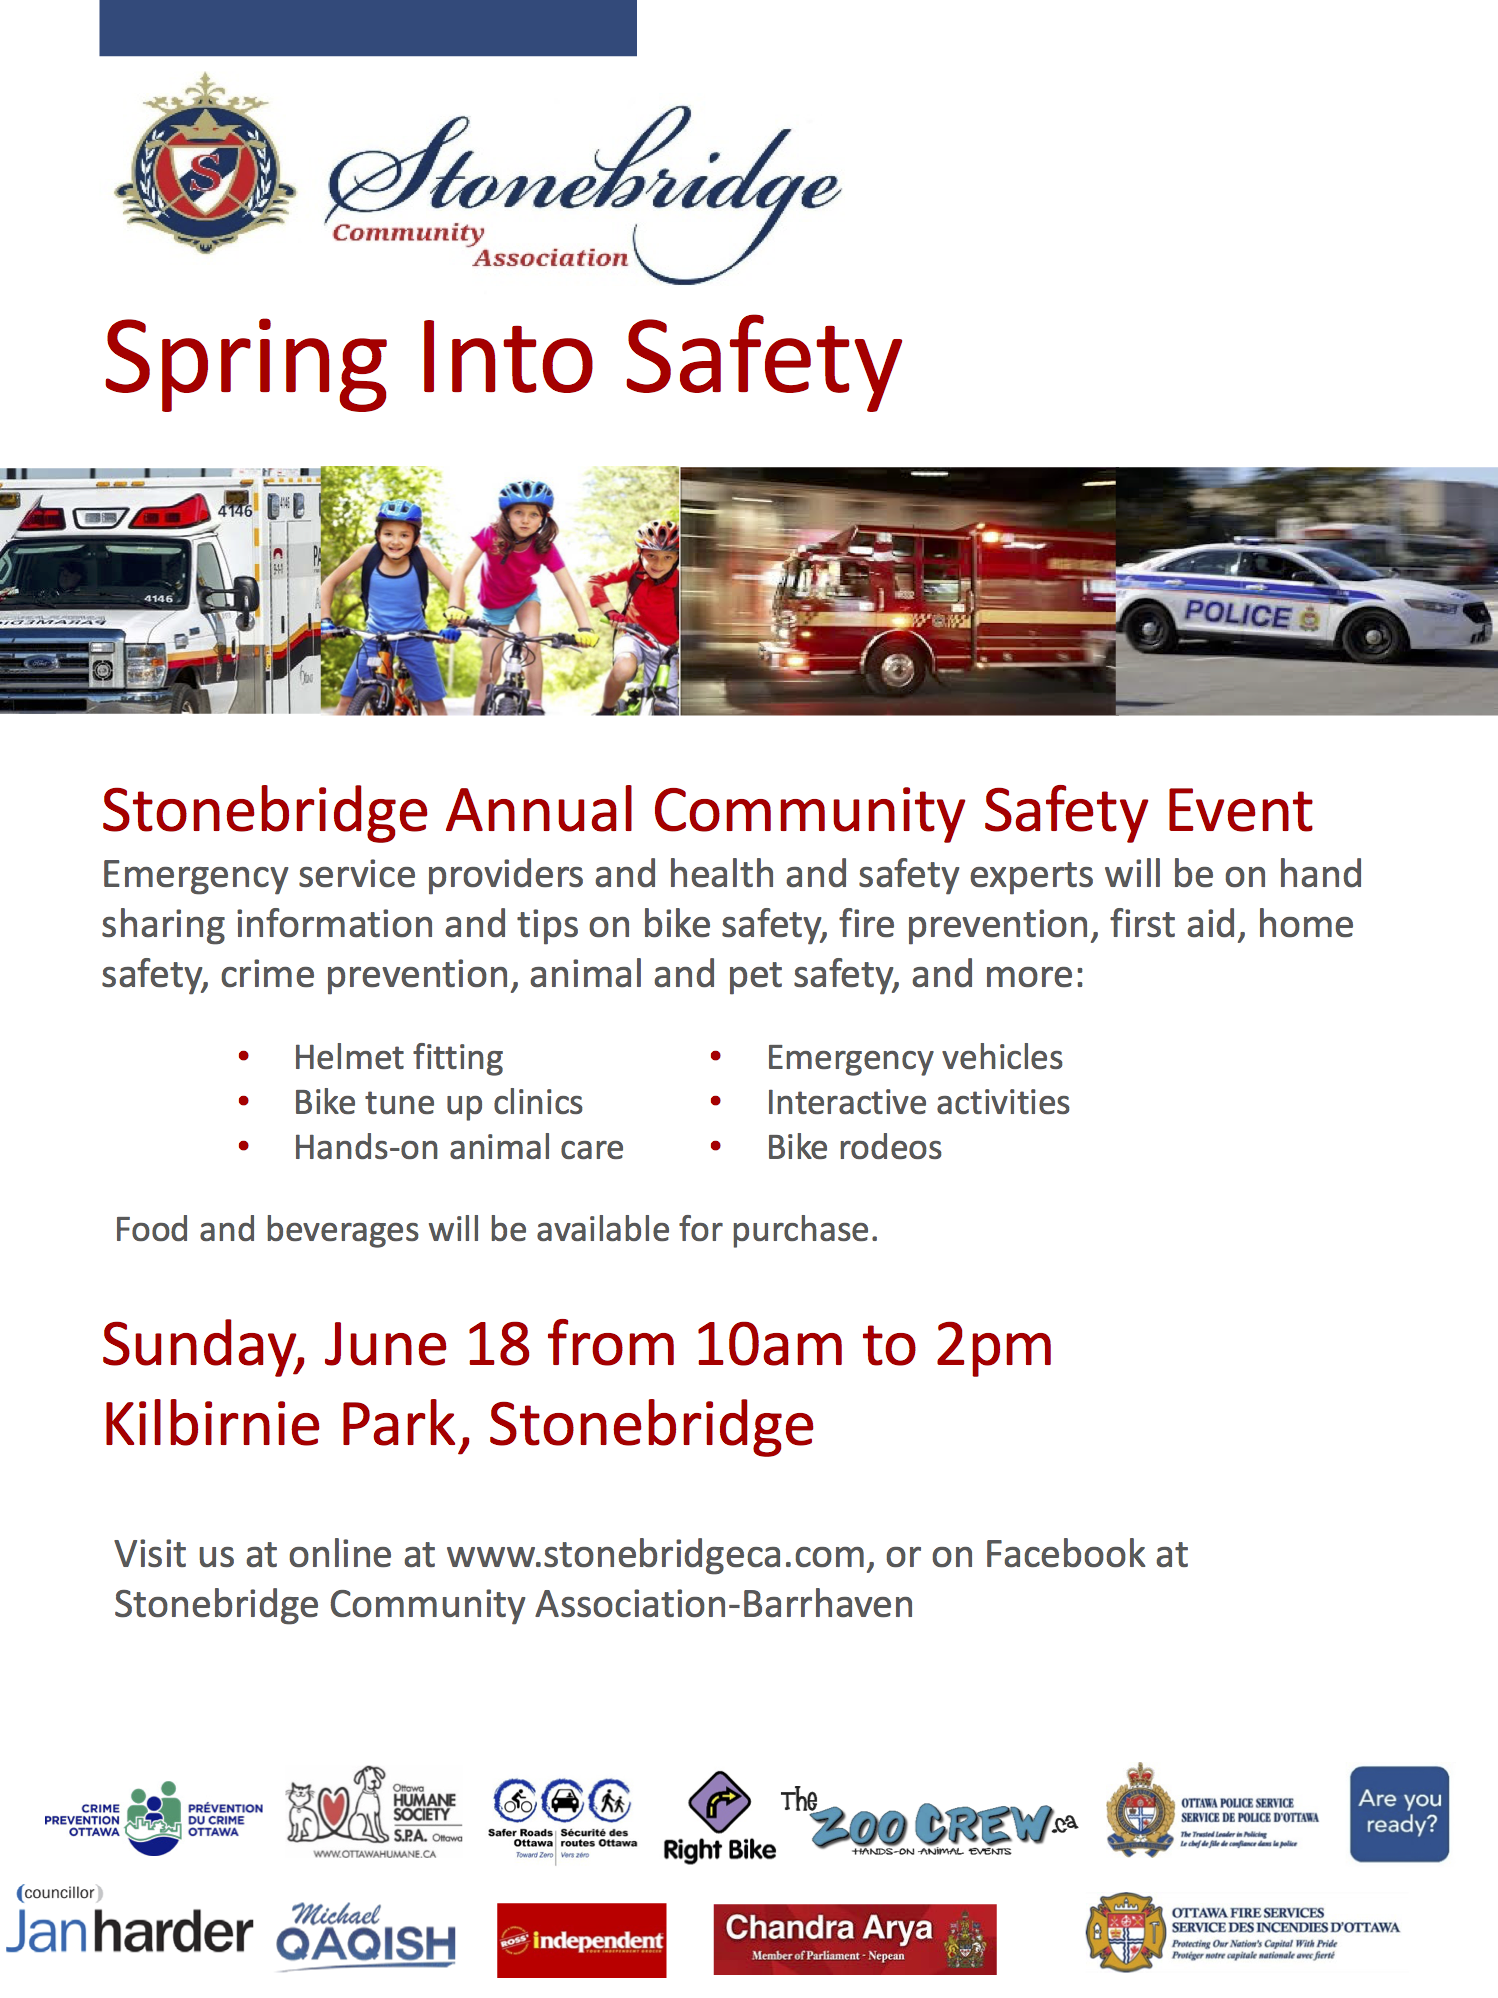 2nd Annual Spring into Safety Event Coming this June 2017